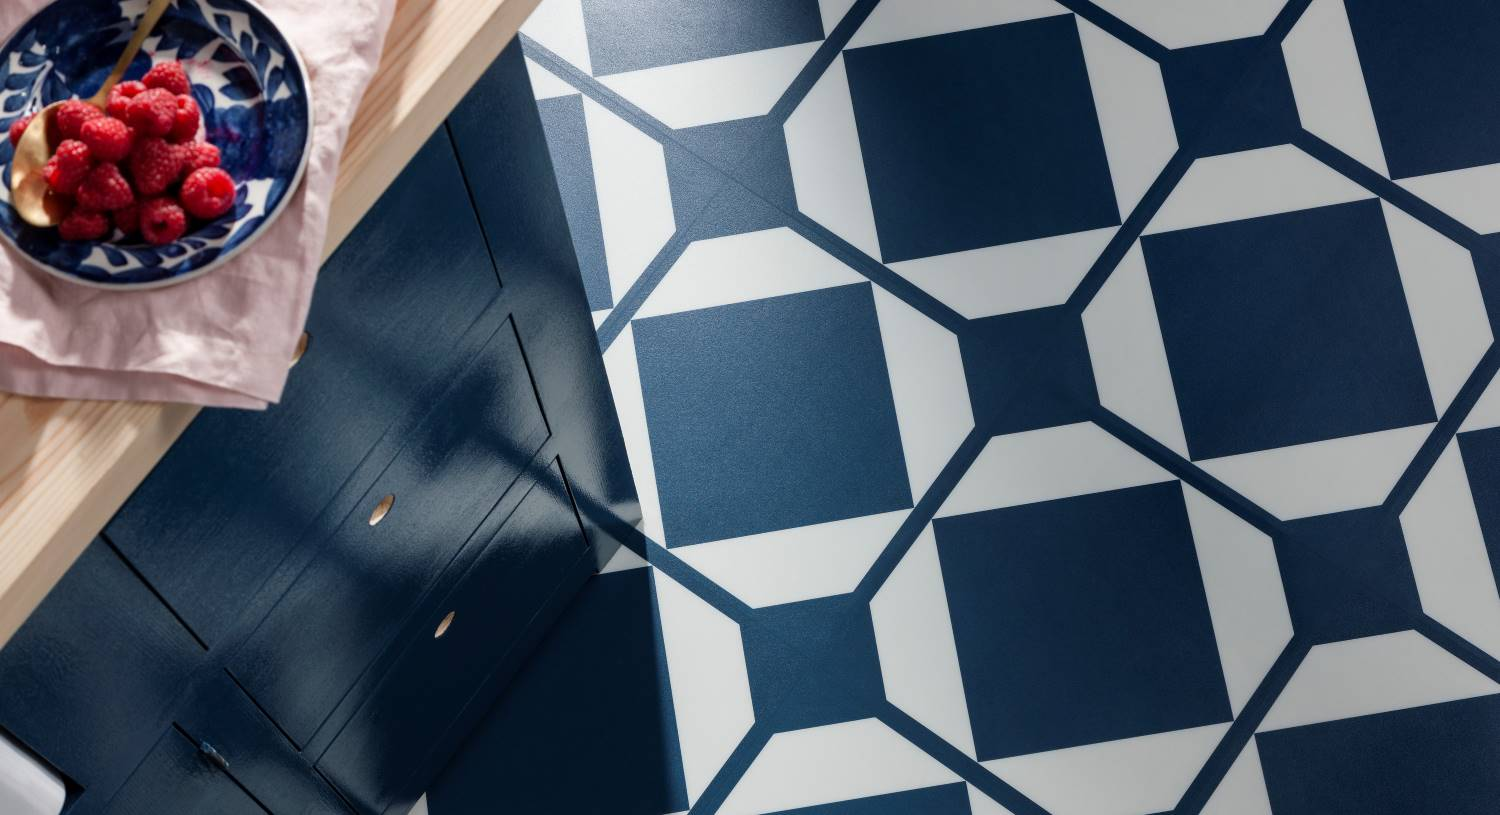 Decorating with Floors